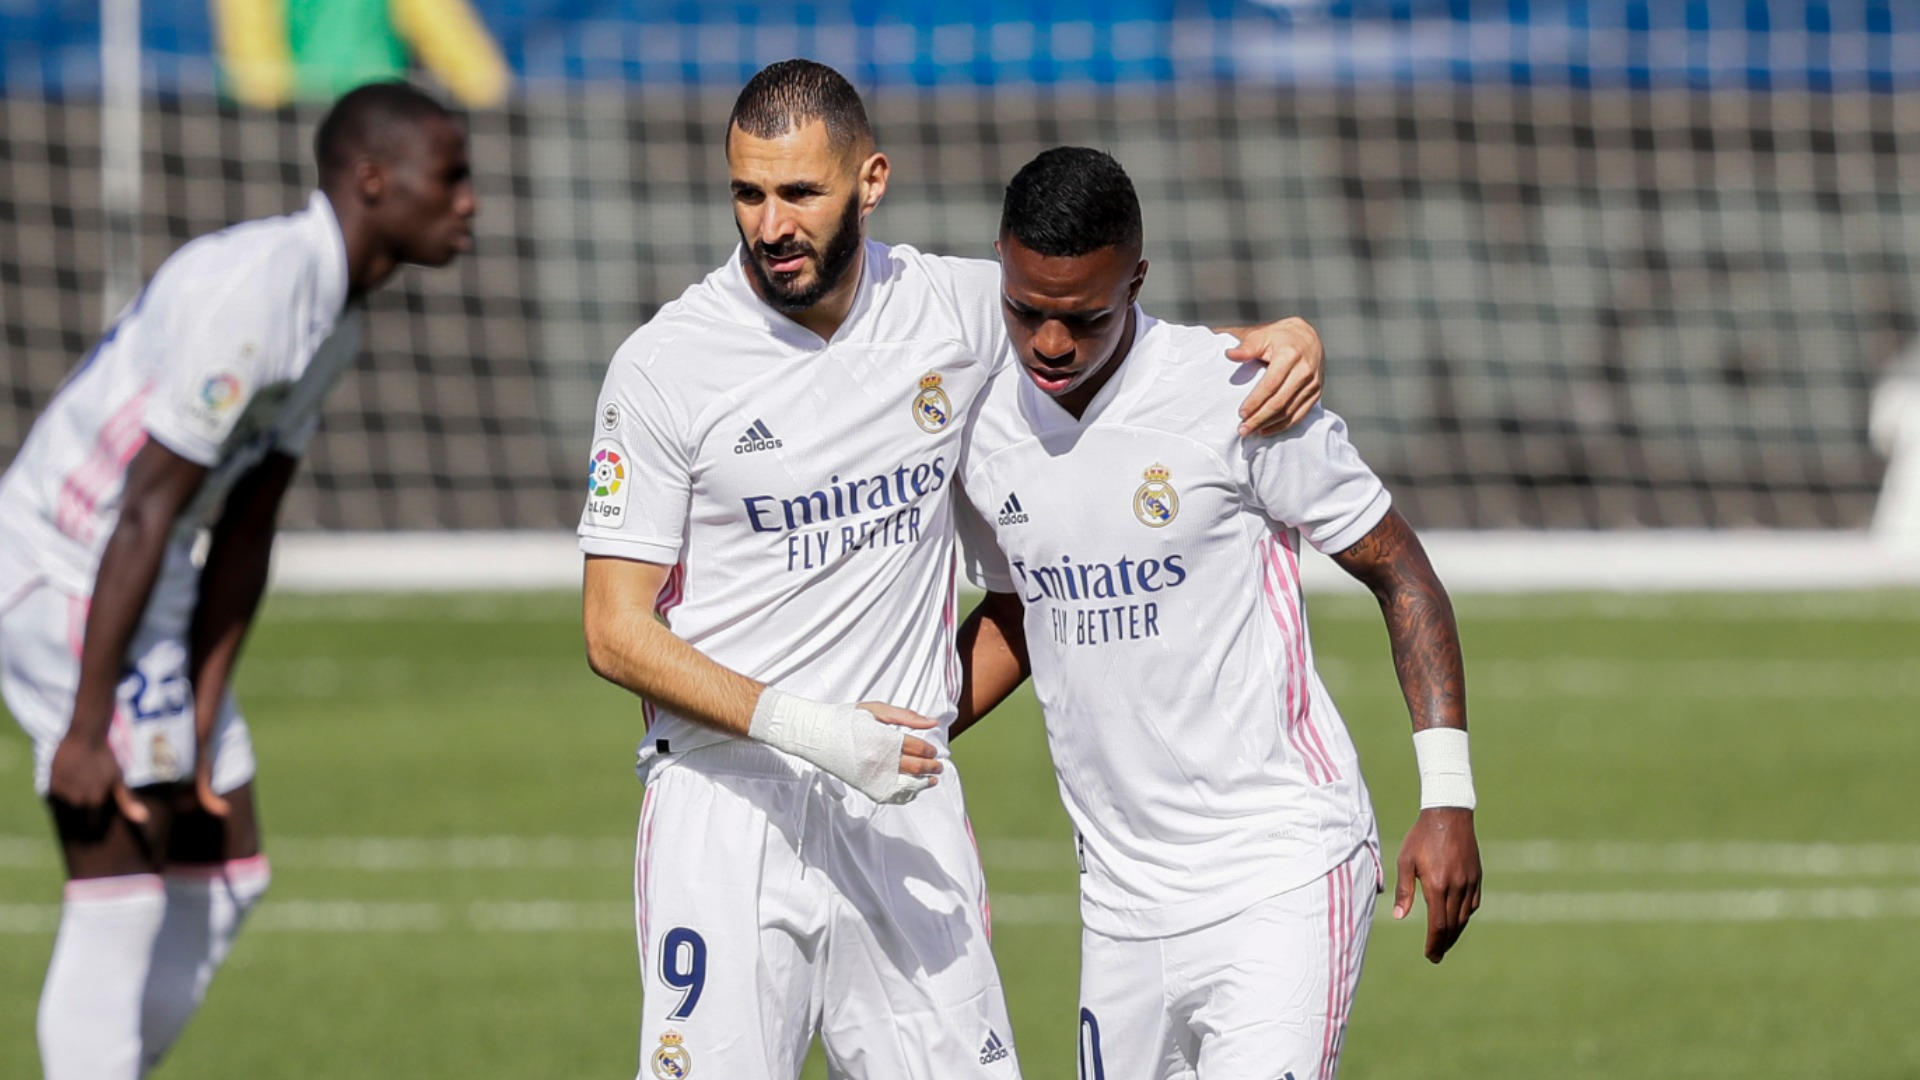 Zidane on Benzema-Vinicius situation: There is no problem between them